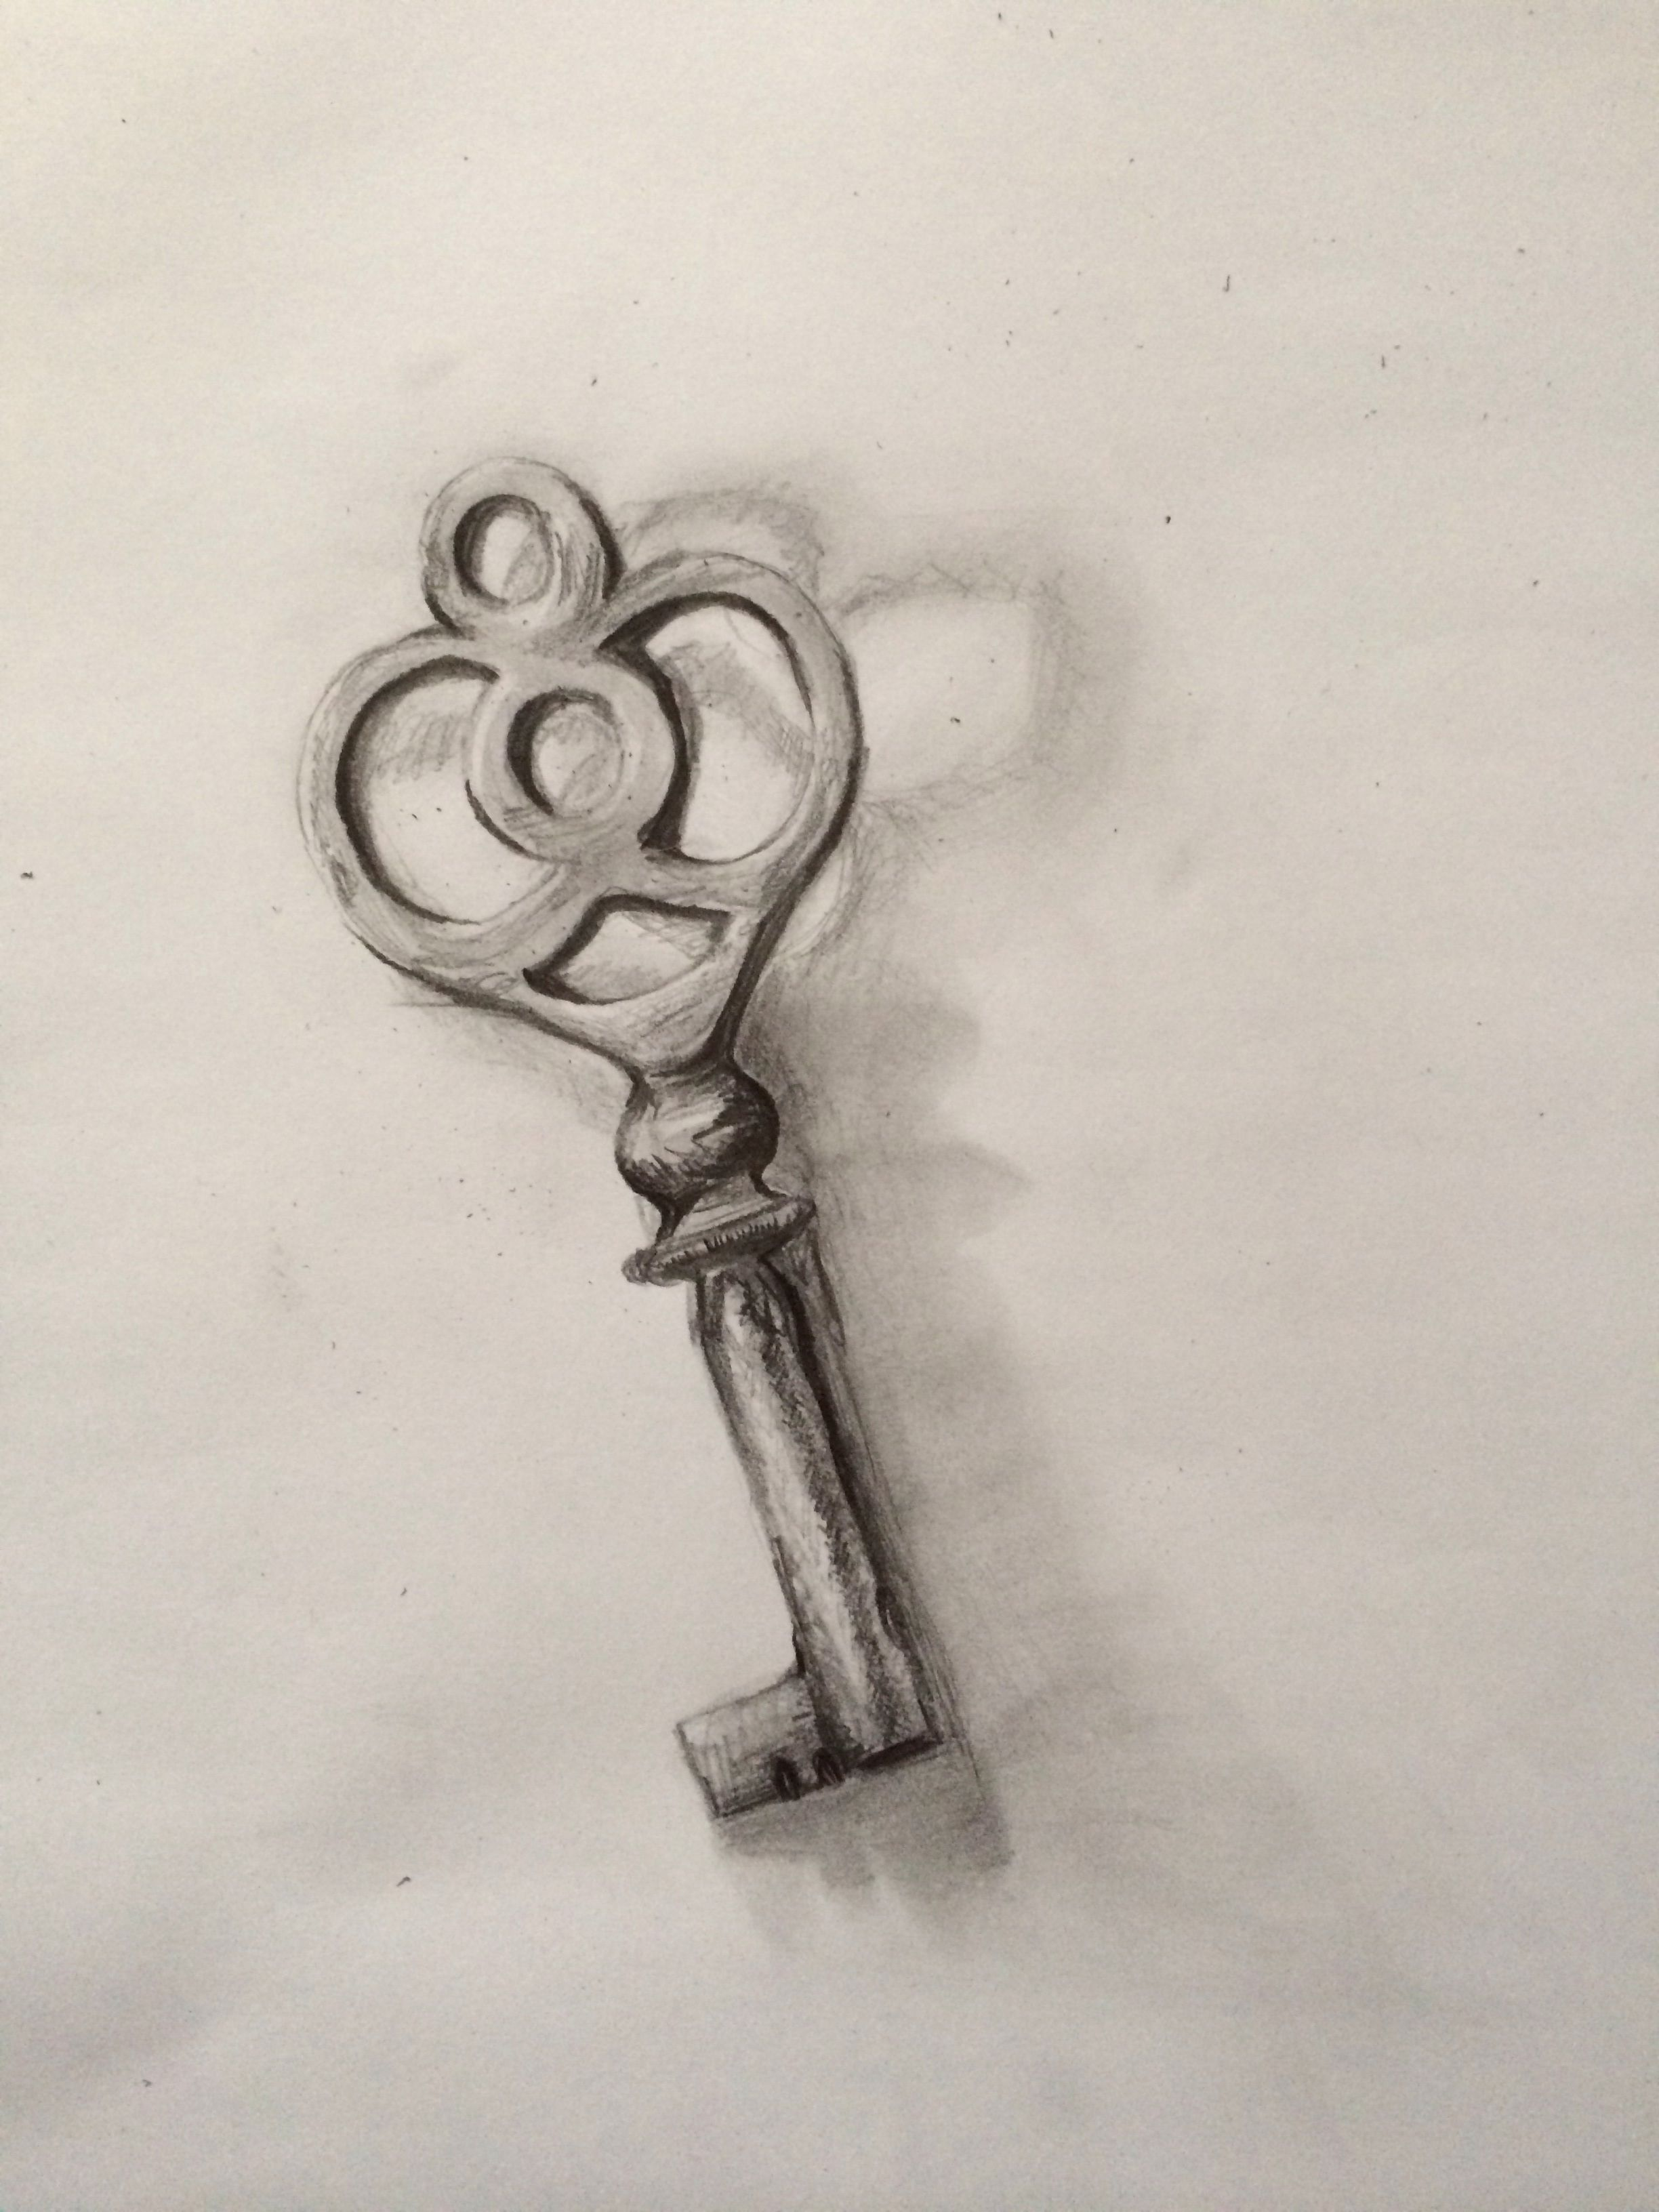 Pencil drawing of a key